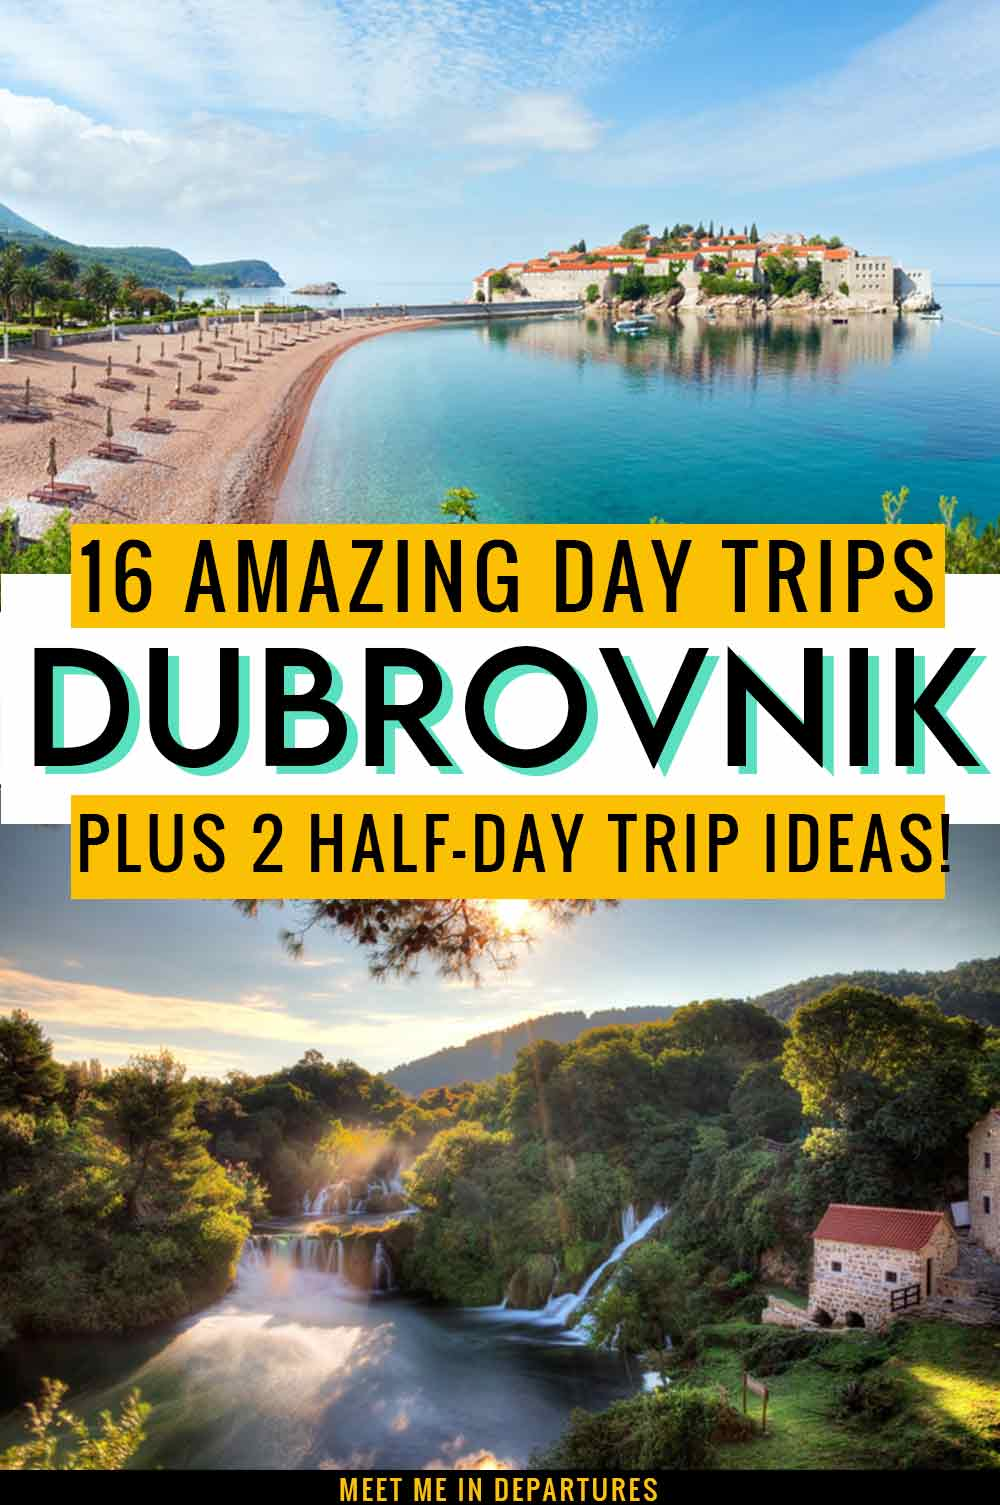 16 Outstanding Day Trips from Dubrovnik + 2 Half Day Dubrovnik Excursions 2